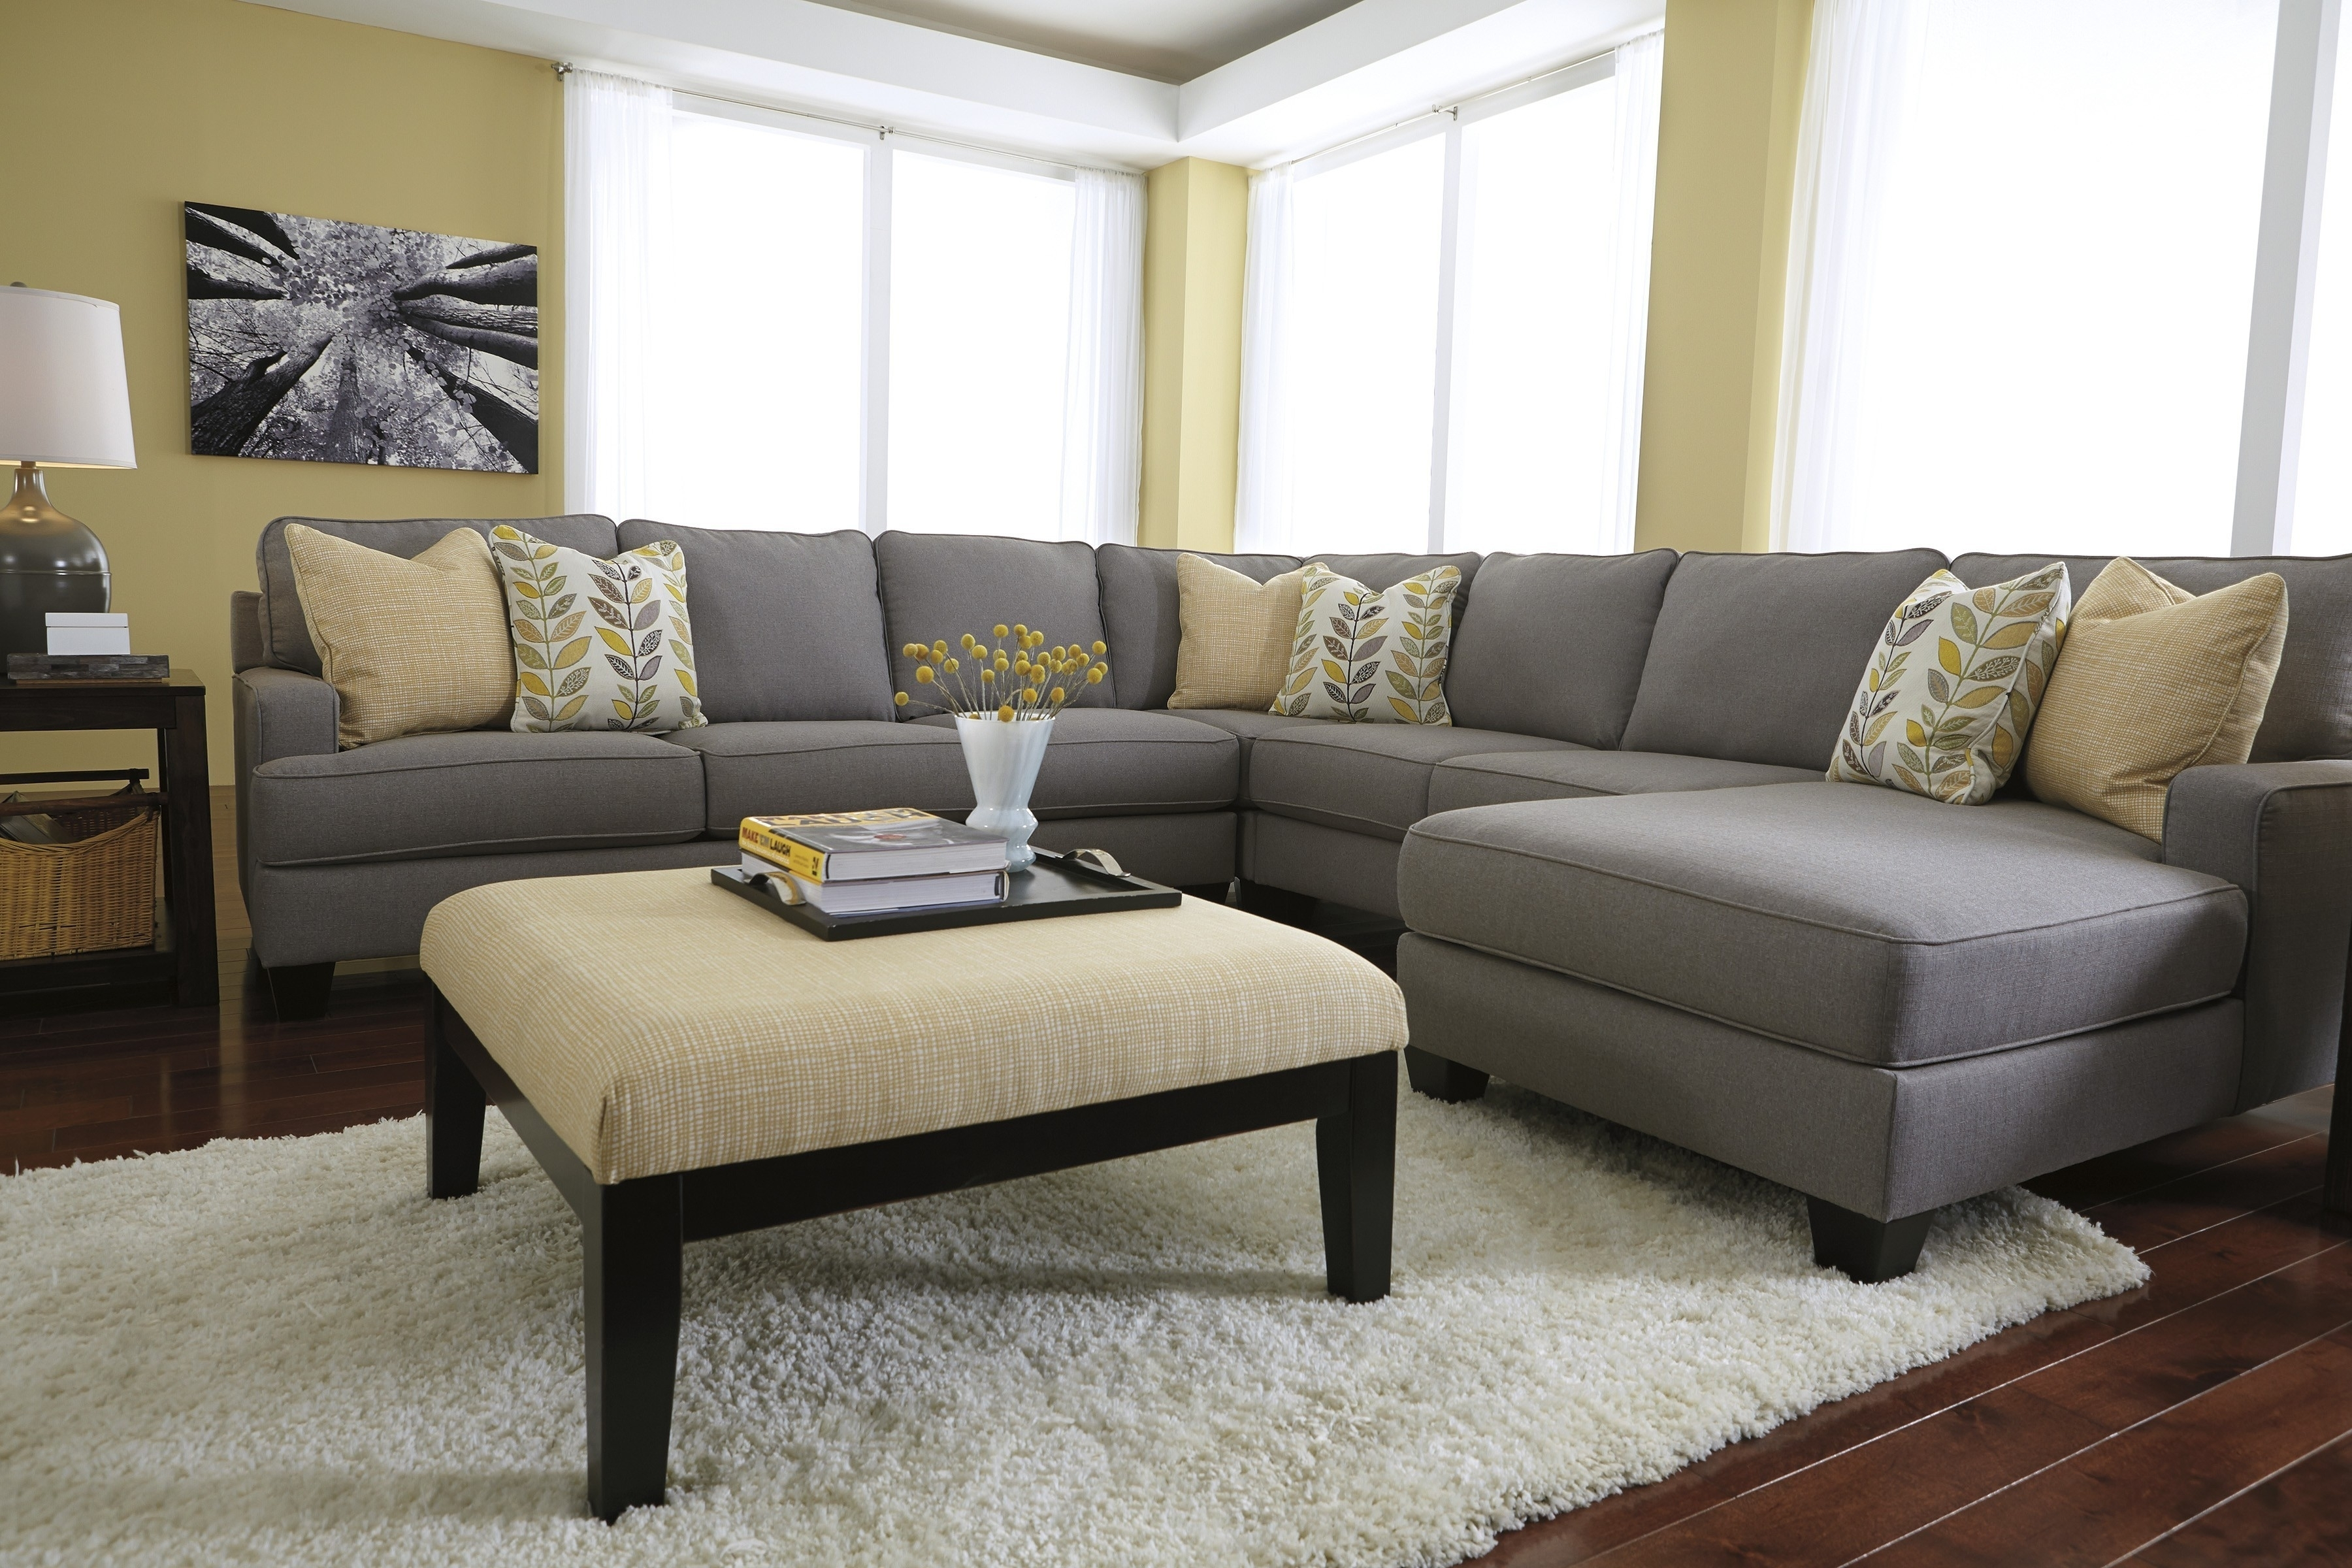 Sectional Sofa : Sectional With Oversized Ottoman Loveseat Sectional Pertaining To Sectional Sofas With Oversized Ottoman (View 7 of 10)